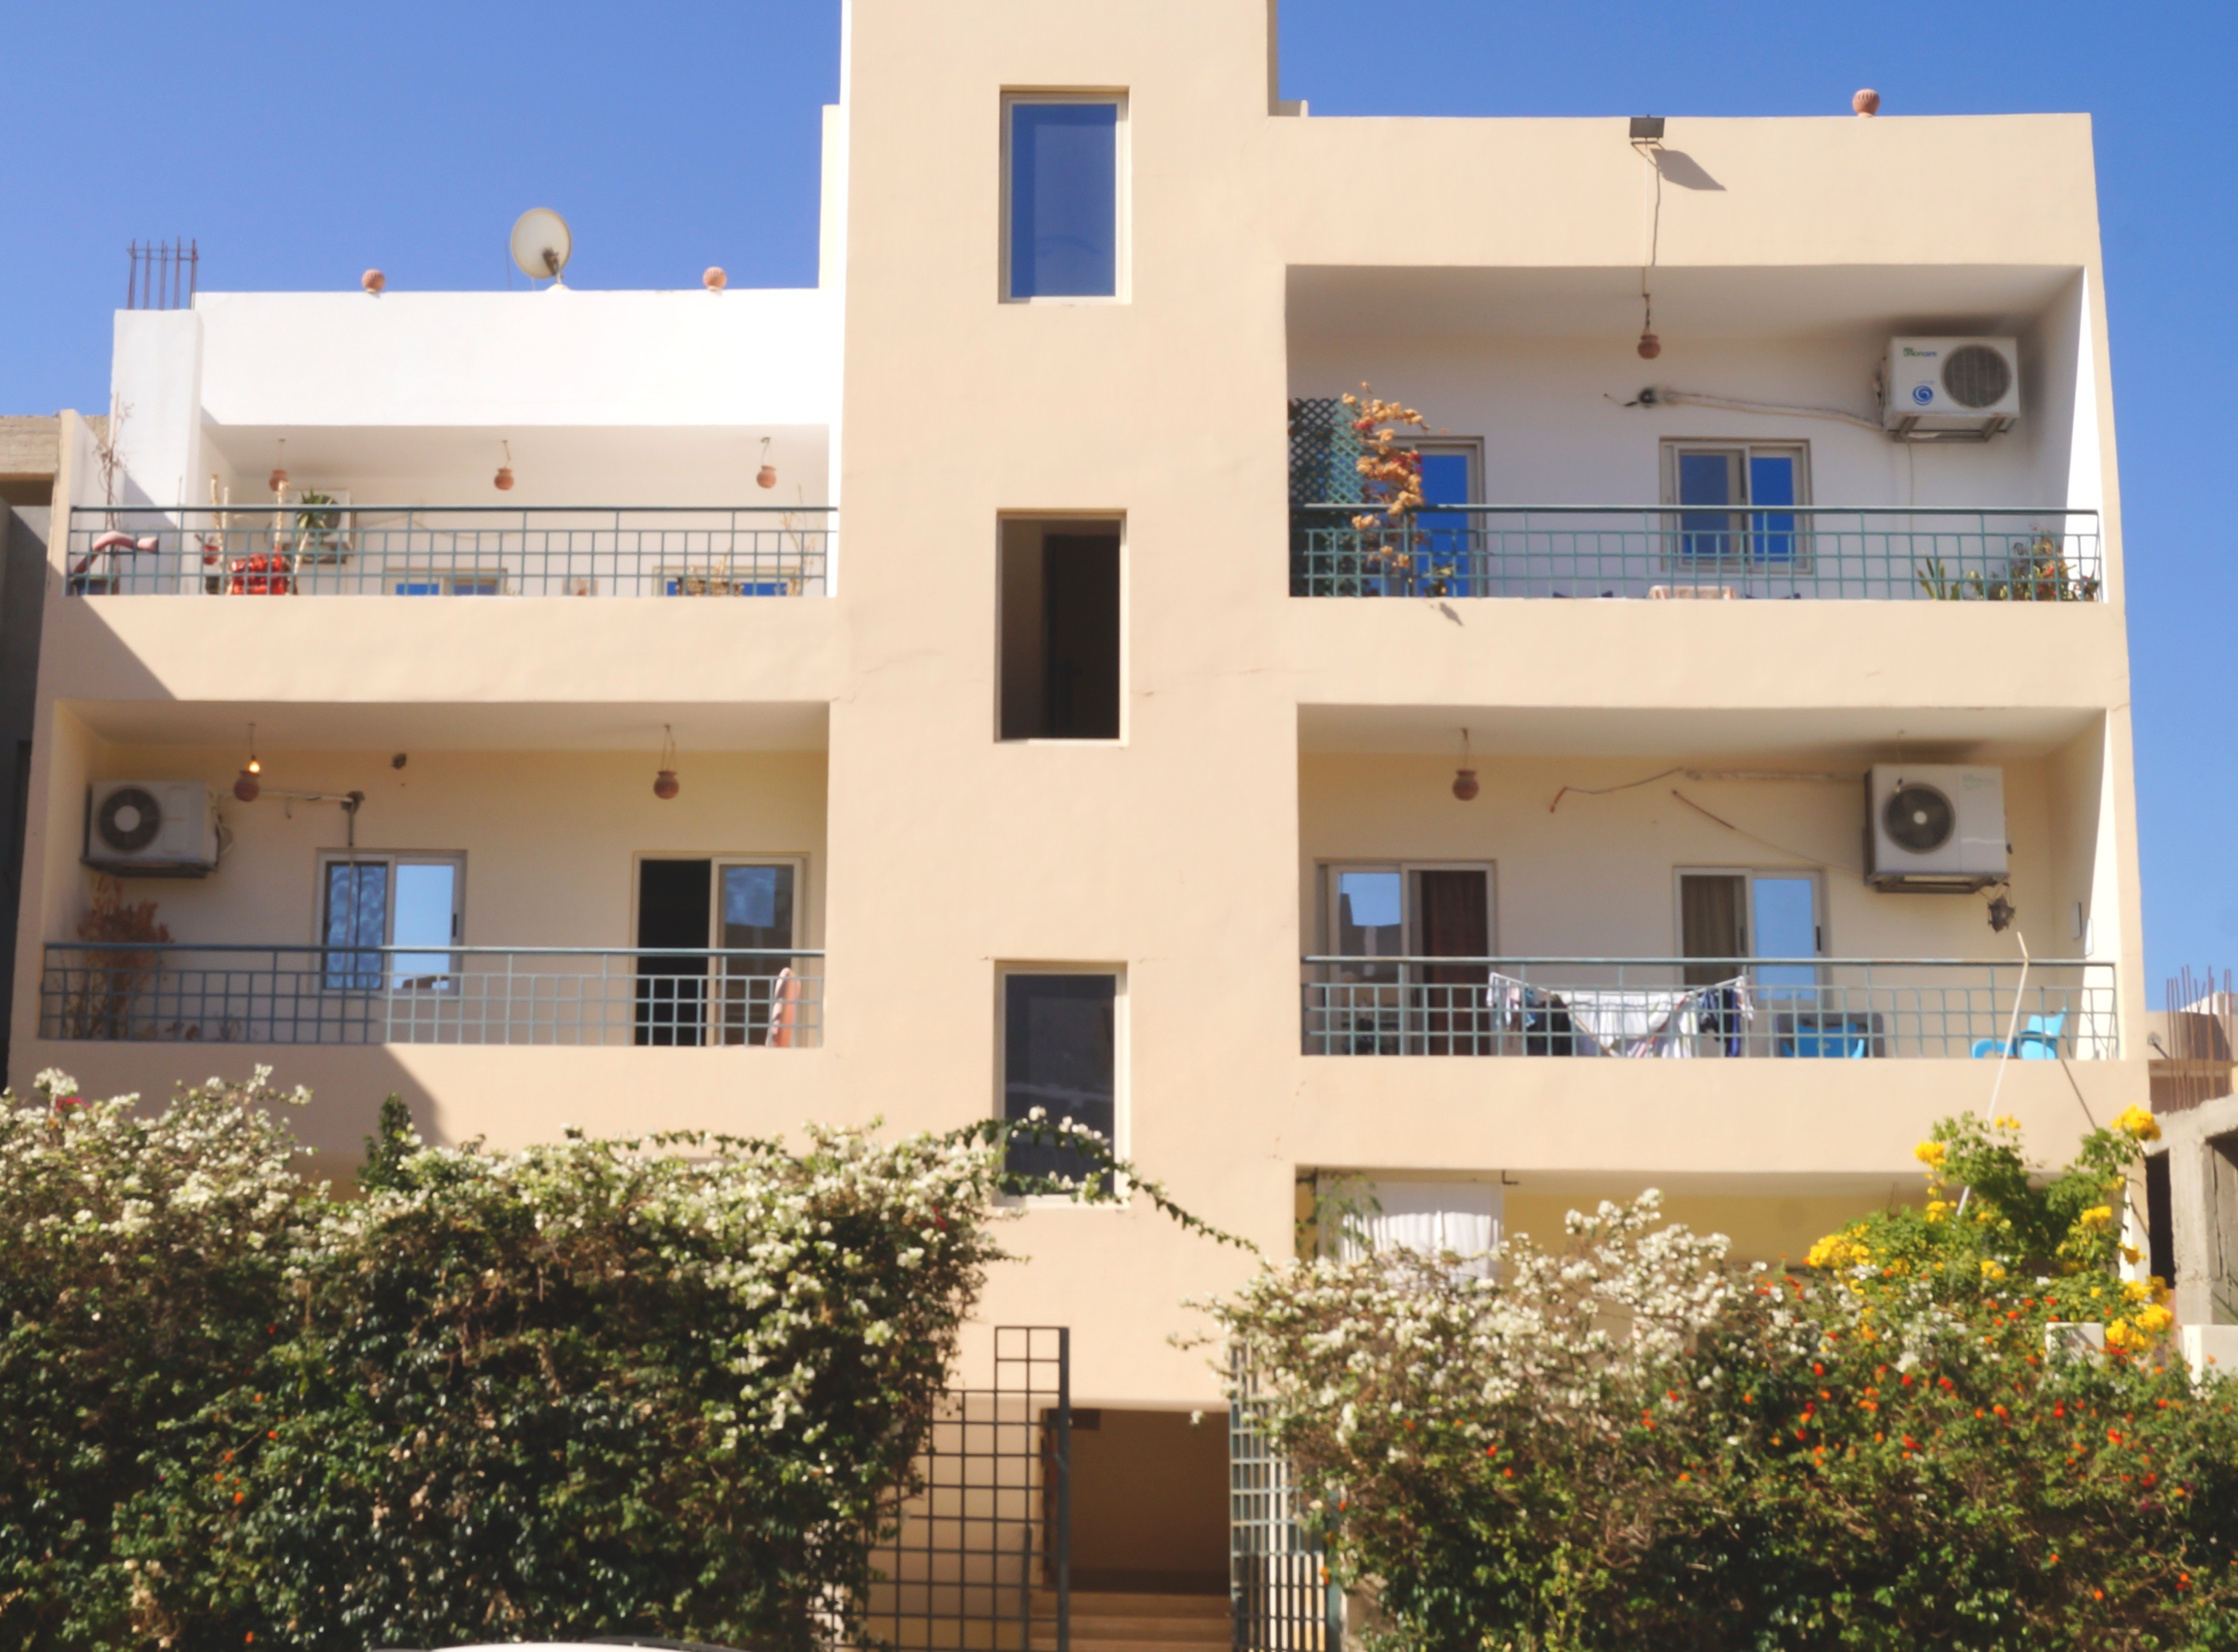 Sea View Apartment House including Deluxe Duplex Apartment and Roof Terrace